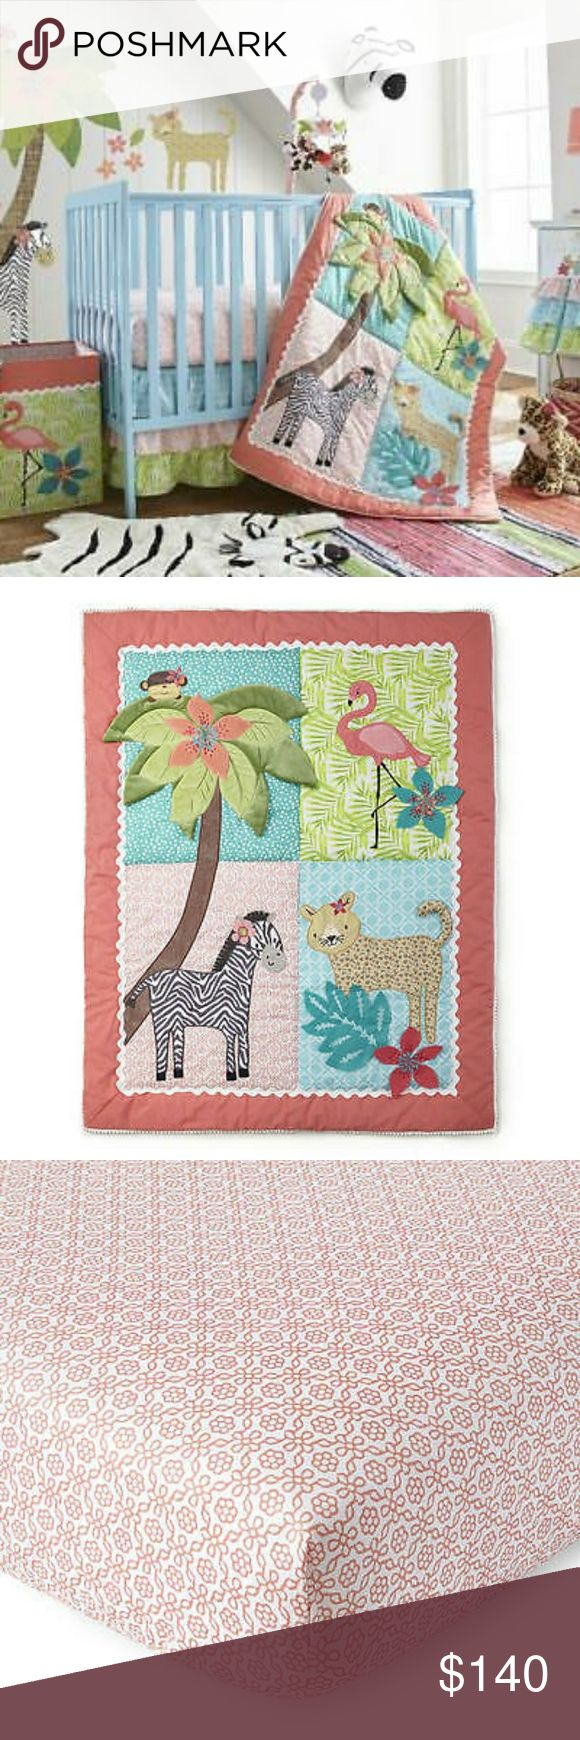 Levtex Baby Oasis 5 Piece Crib Bedding Features a tropical scene with a zebra, leopard, flamingo and monkey   Set includes : a Quilt, 100% Cotton coral printed Crib Fitted Sheet, a tiered Dust Ruffle, Diaper Stacker and a playful Wall Decal  Quilt: 36 inch x 45 inch, Fitted Sheet fits a standard 28 inch x 52 inch crib mattress  Dust Ruffle has a 16 inch drop Diaper Stacker is 16 inch x 10.5 inch x 8 inch wall decal measures 38.5 inch x 64.5 inch to create a mural-like scene   Brand New in…